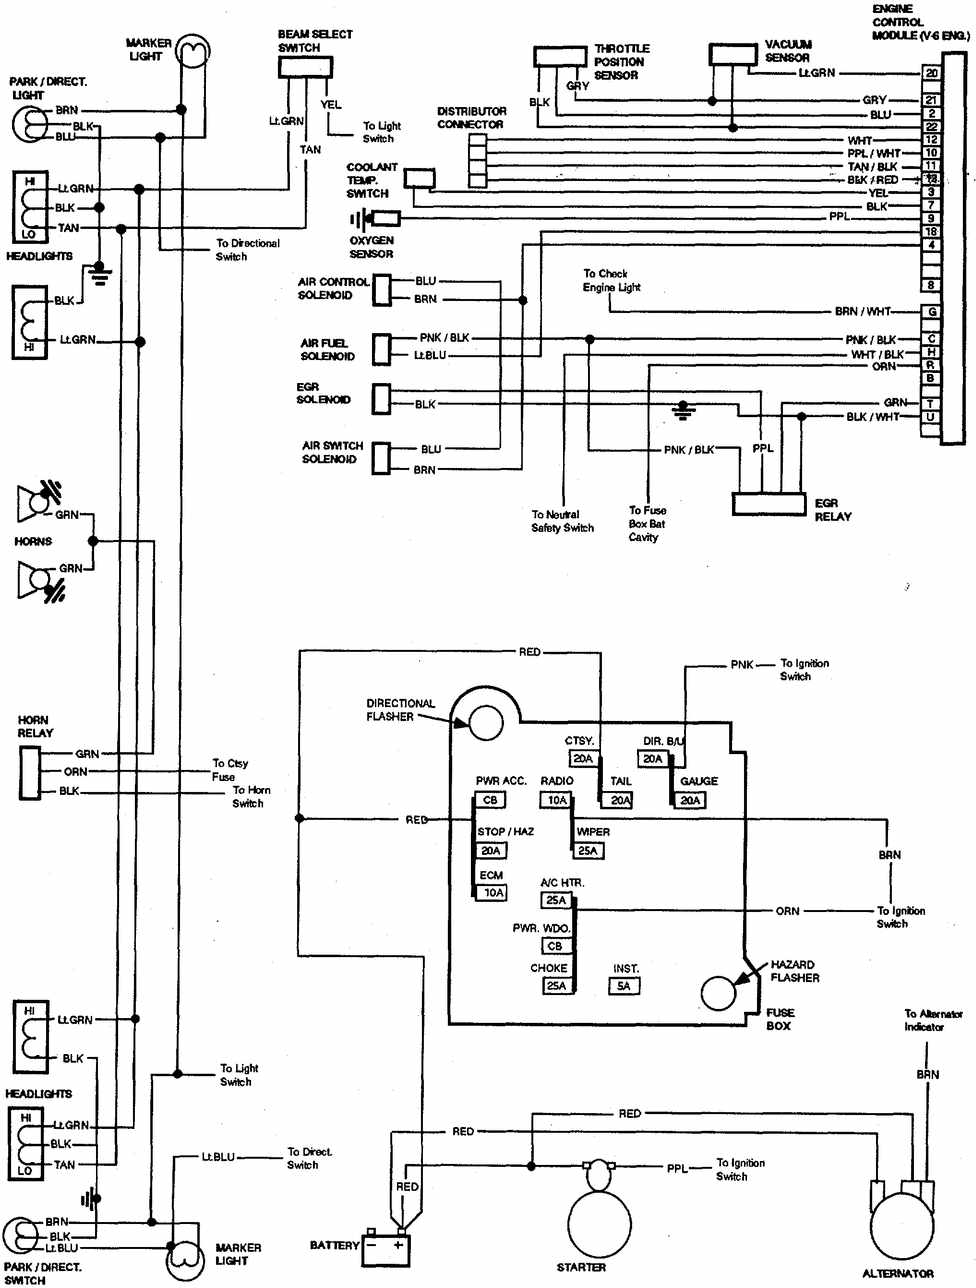 1987 chevy monte carlo wiring diagram